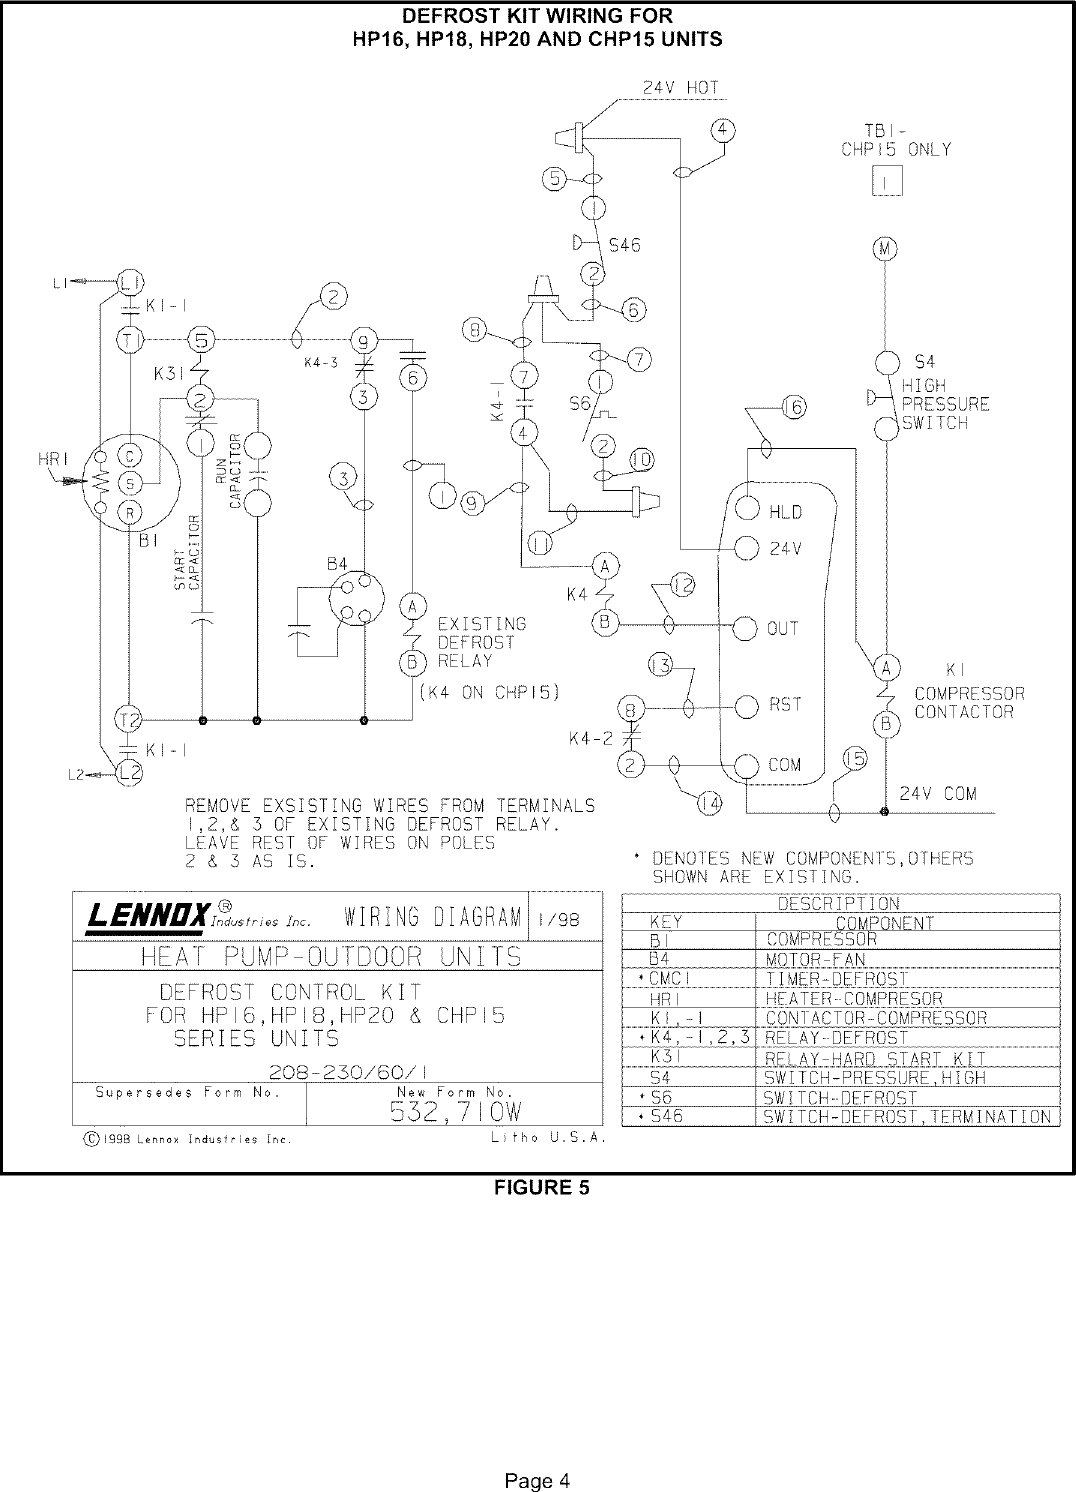 Lennox Controls And Hvac Accessories Manual L0806301 Hard Start Capacitor Wiring Diagrams Page 4 Of 8